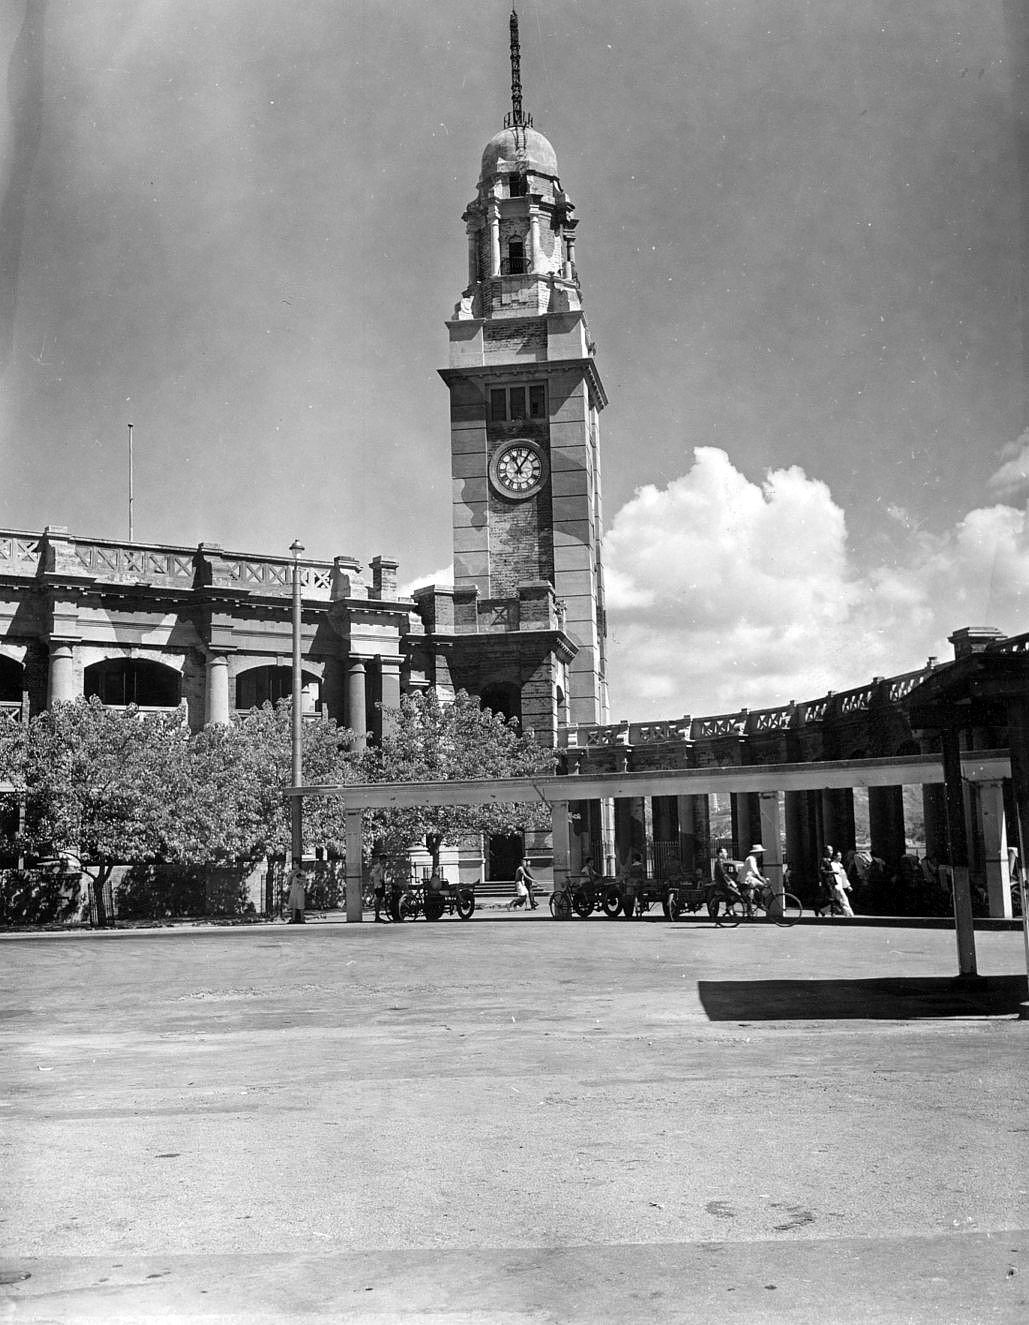 Royal Canadian Navy : Clock tower, Kowloon, 1945